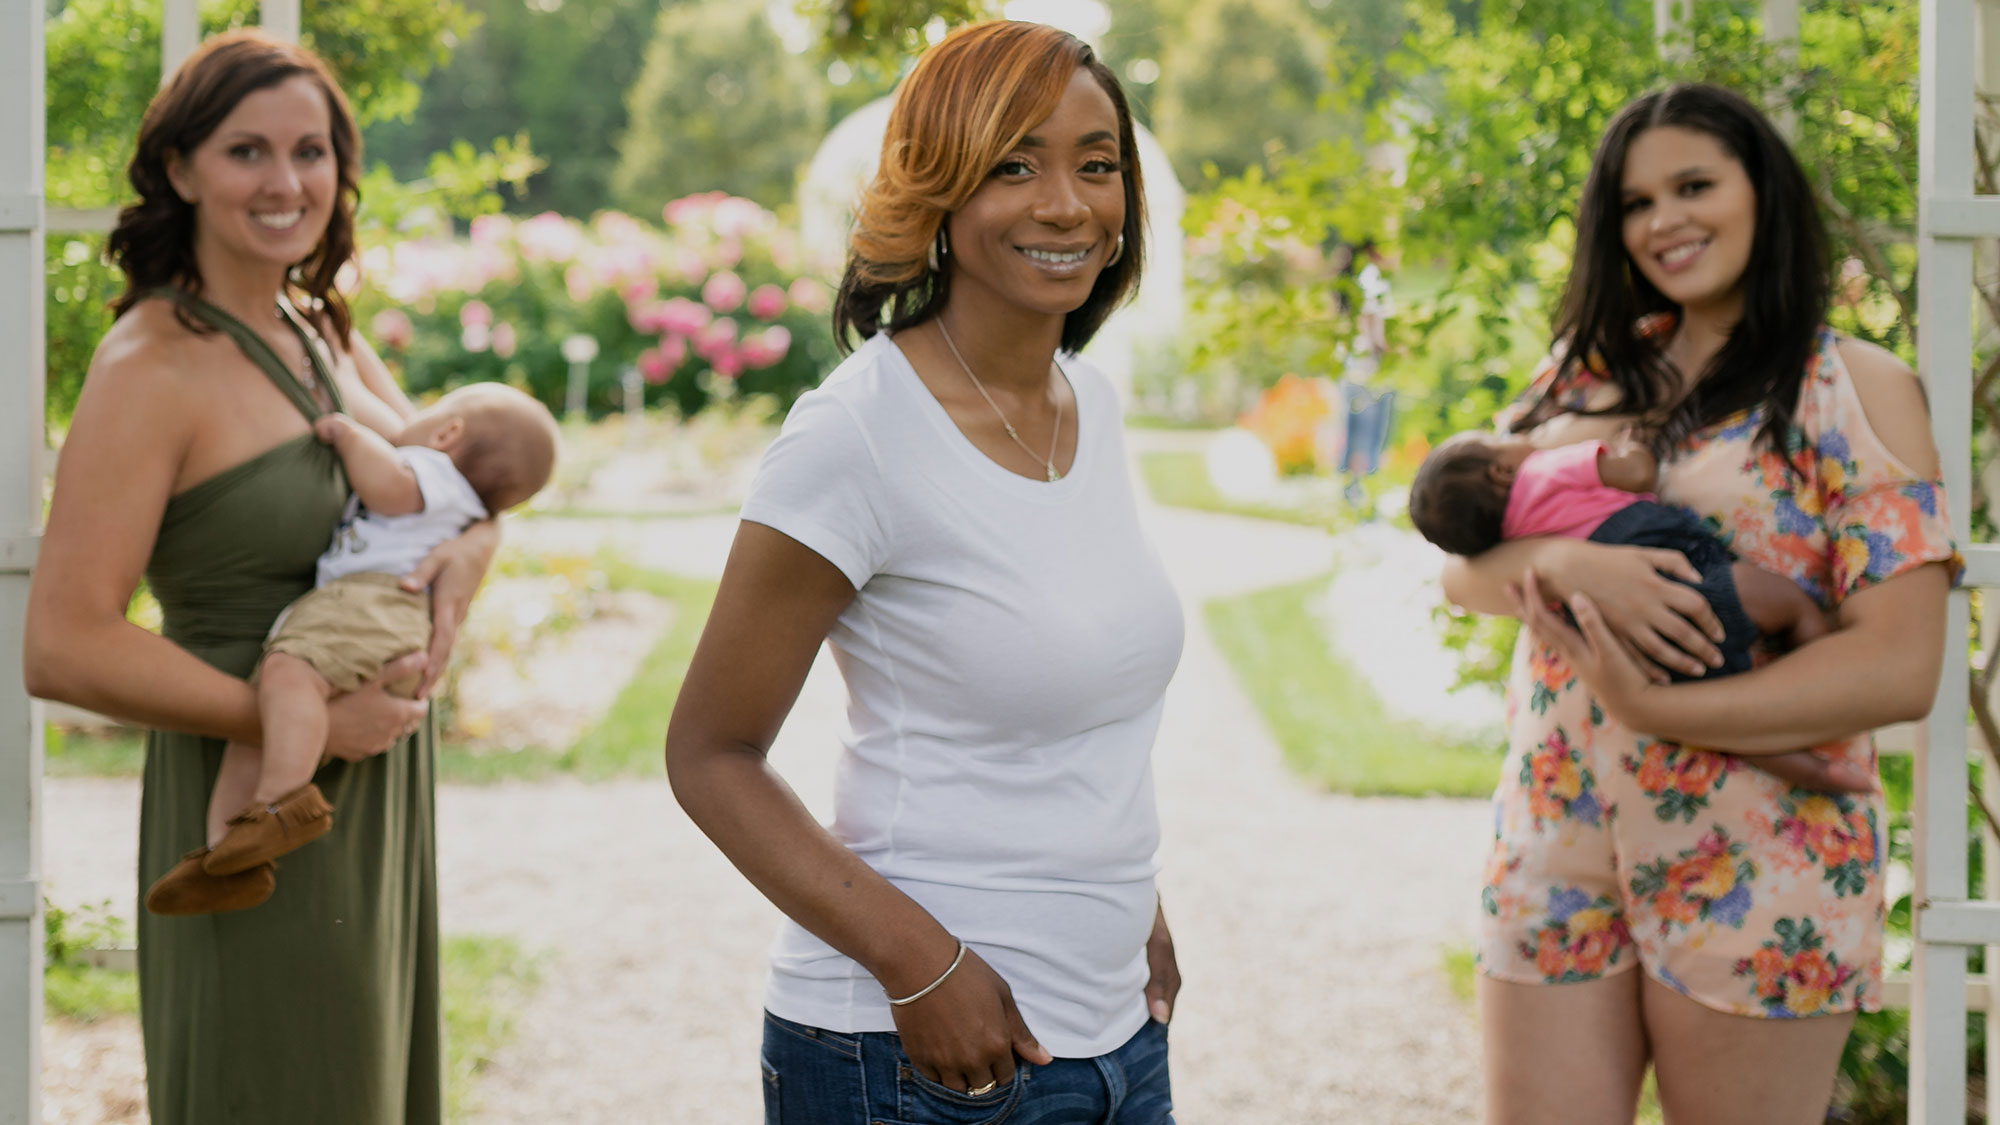 YOLO Breastfeed owner standing new to two women breastfeeding